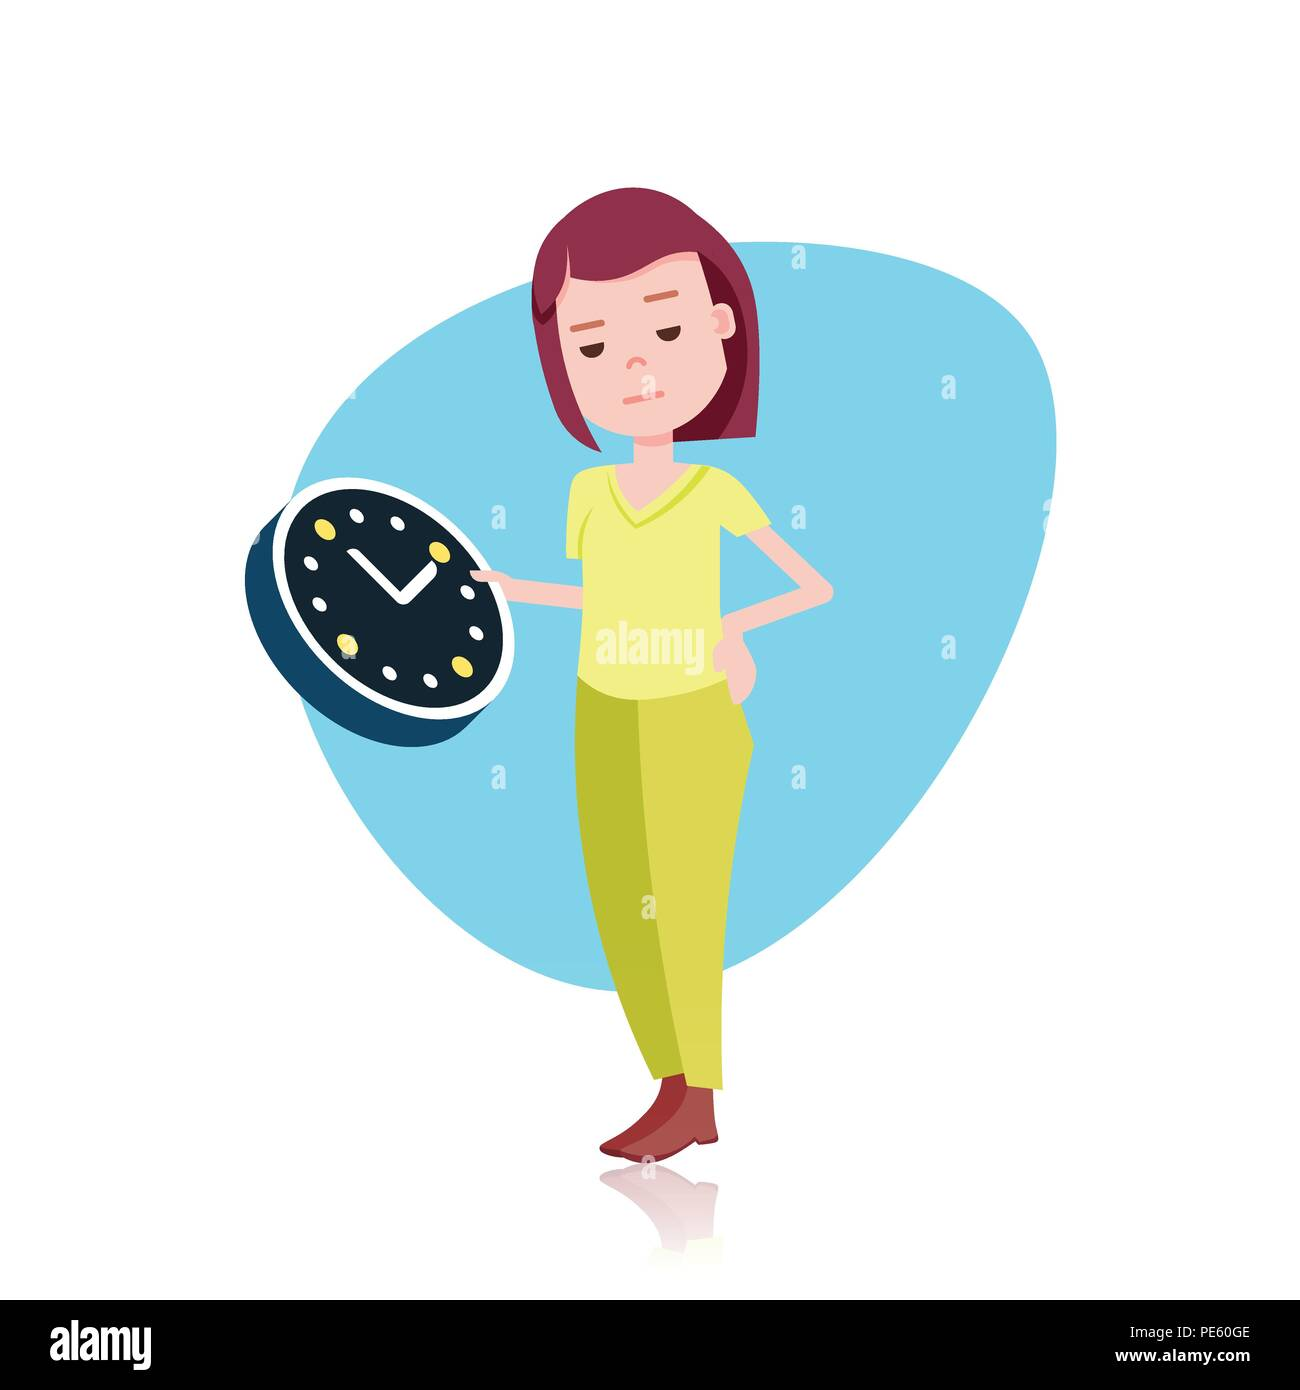 Woman Character Holding Wall Clock Template For Design Work Or